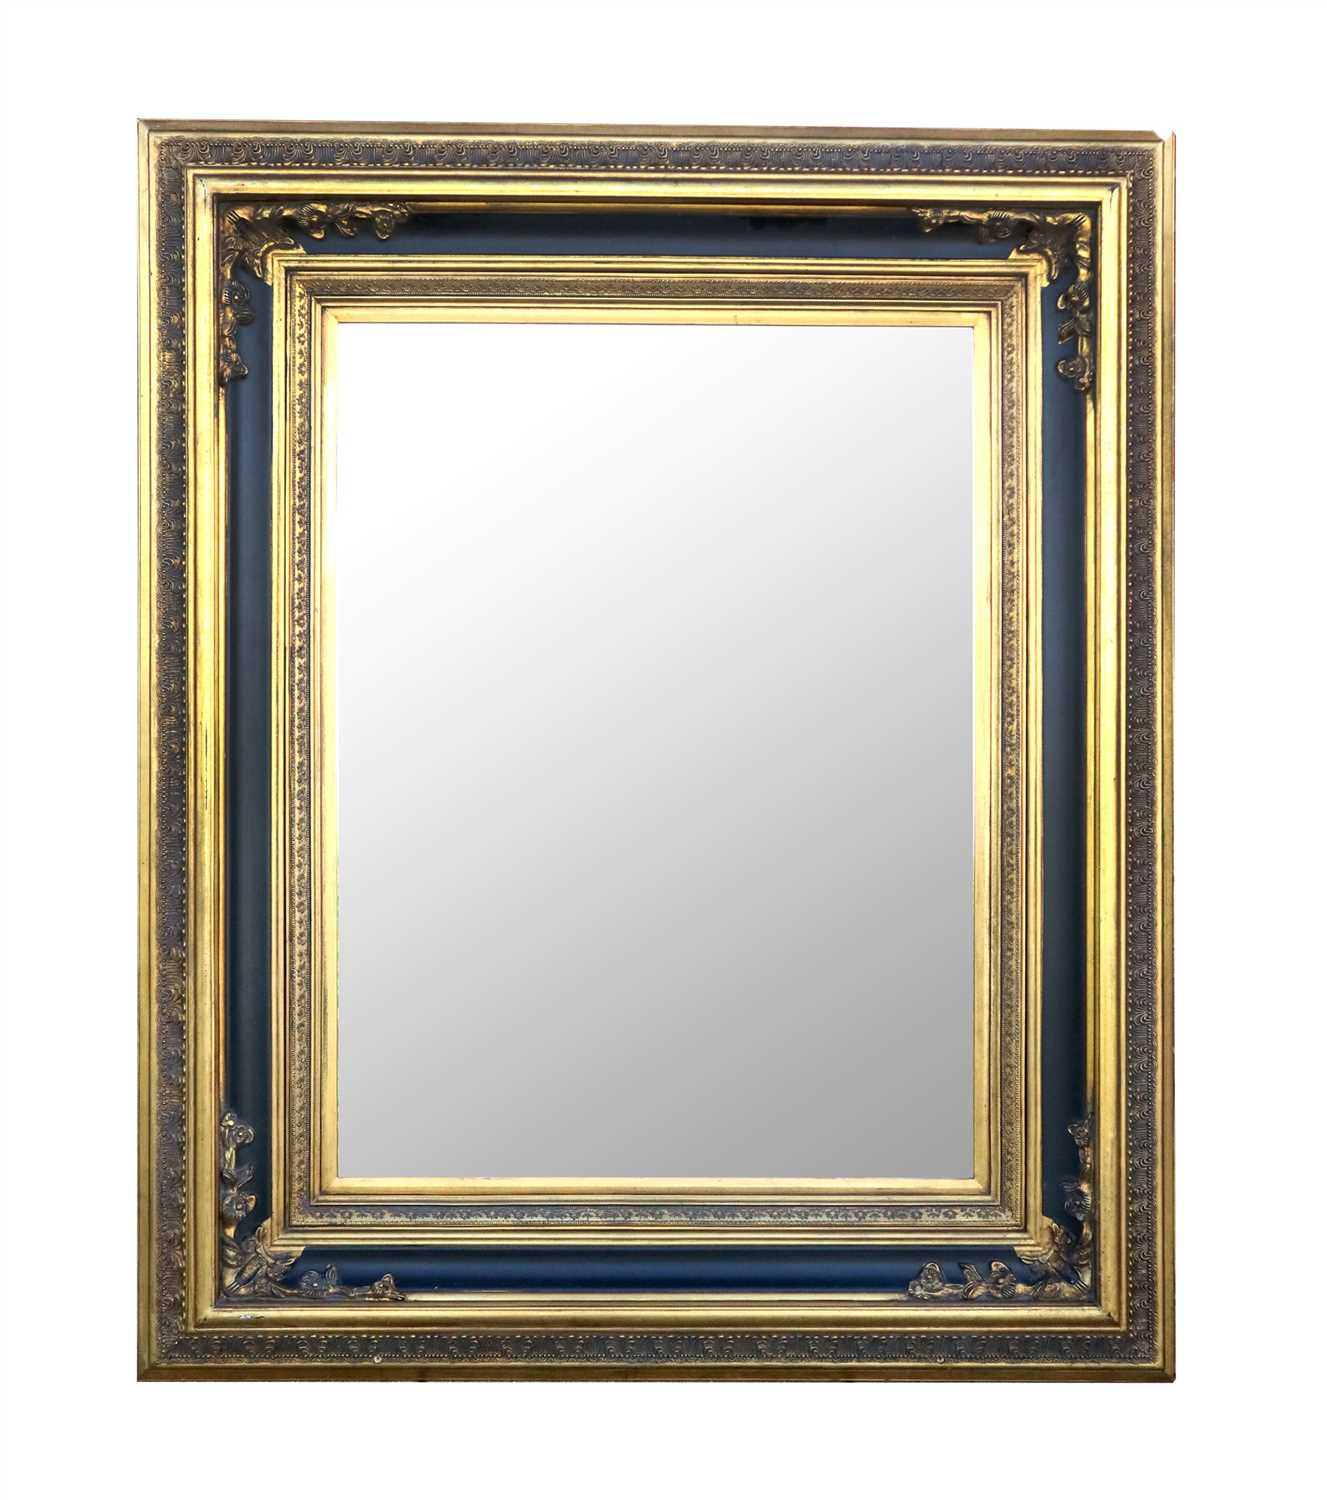 Lot 995-A very large decorative reproduction gilt framed wall mirror